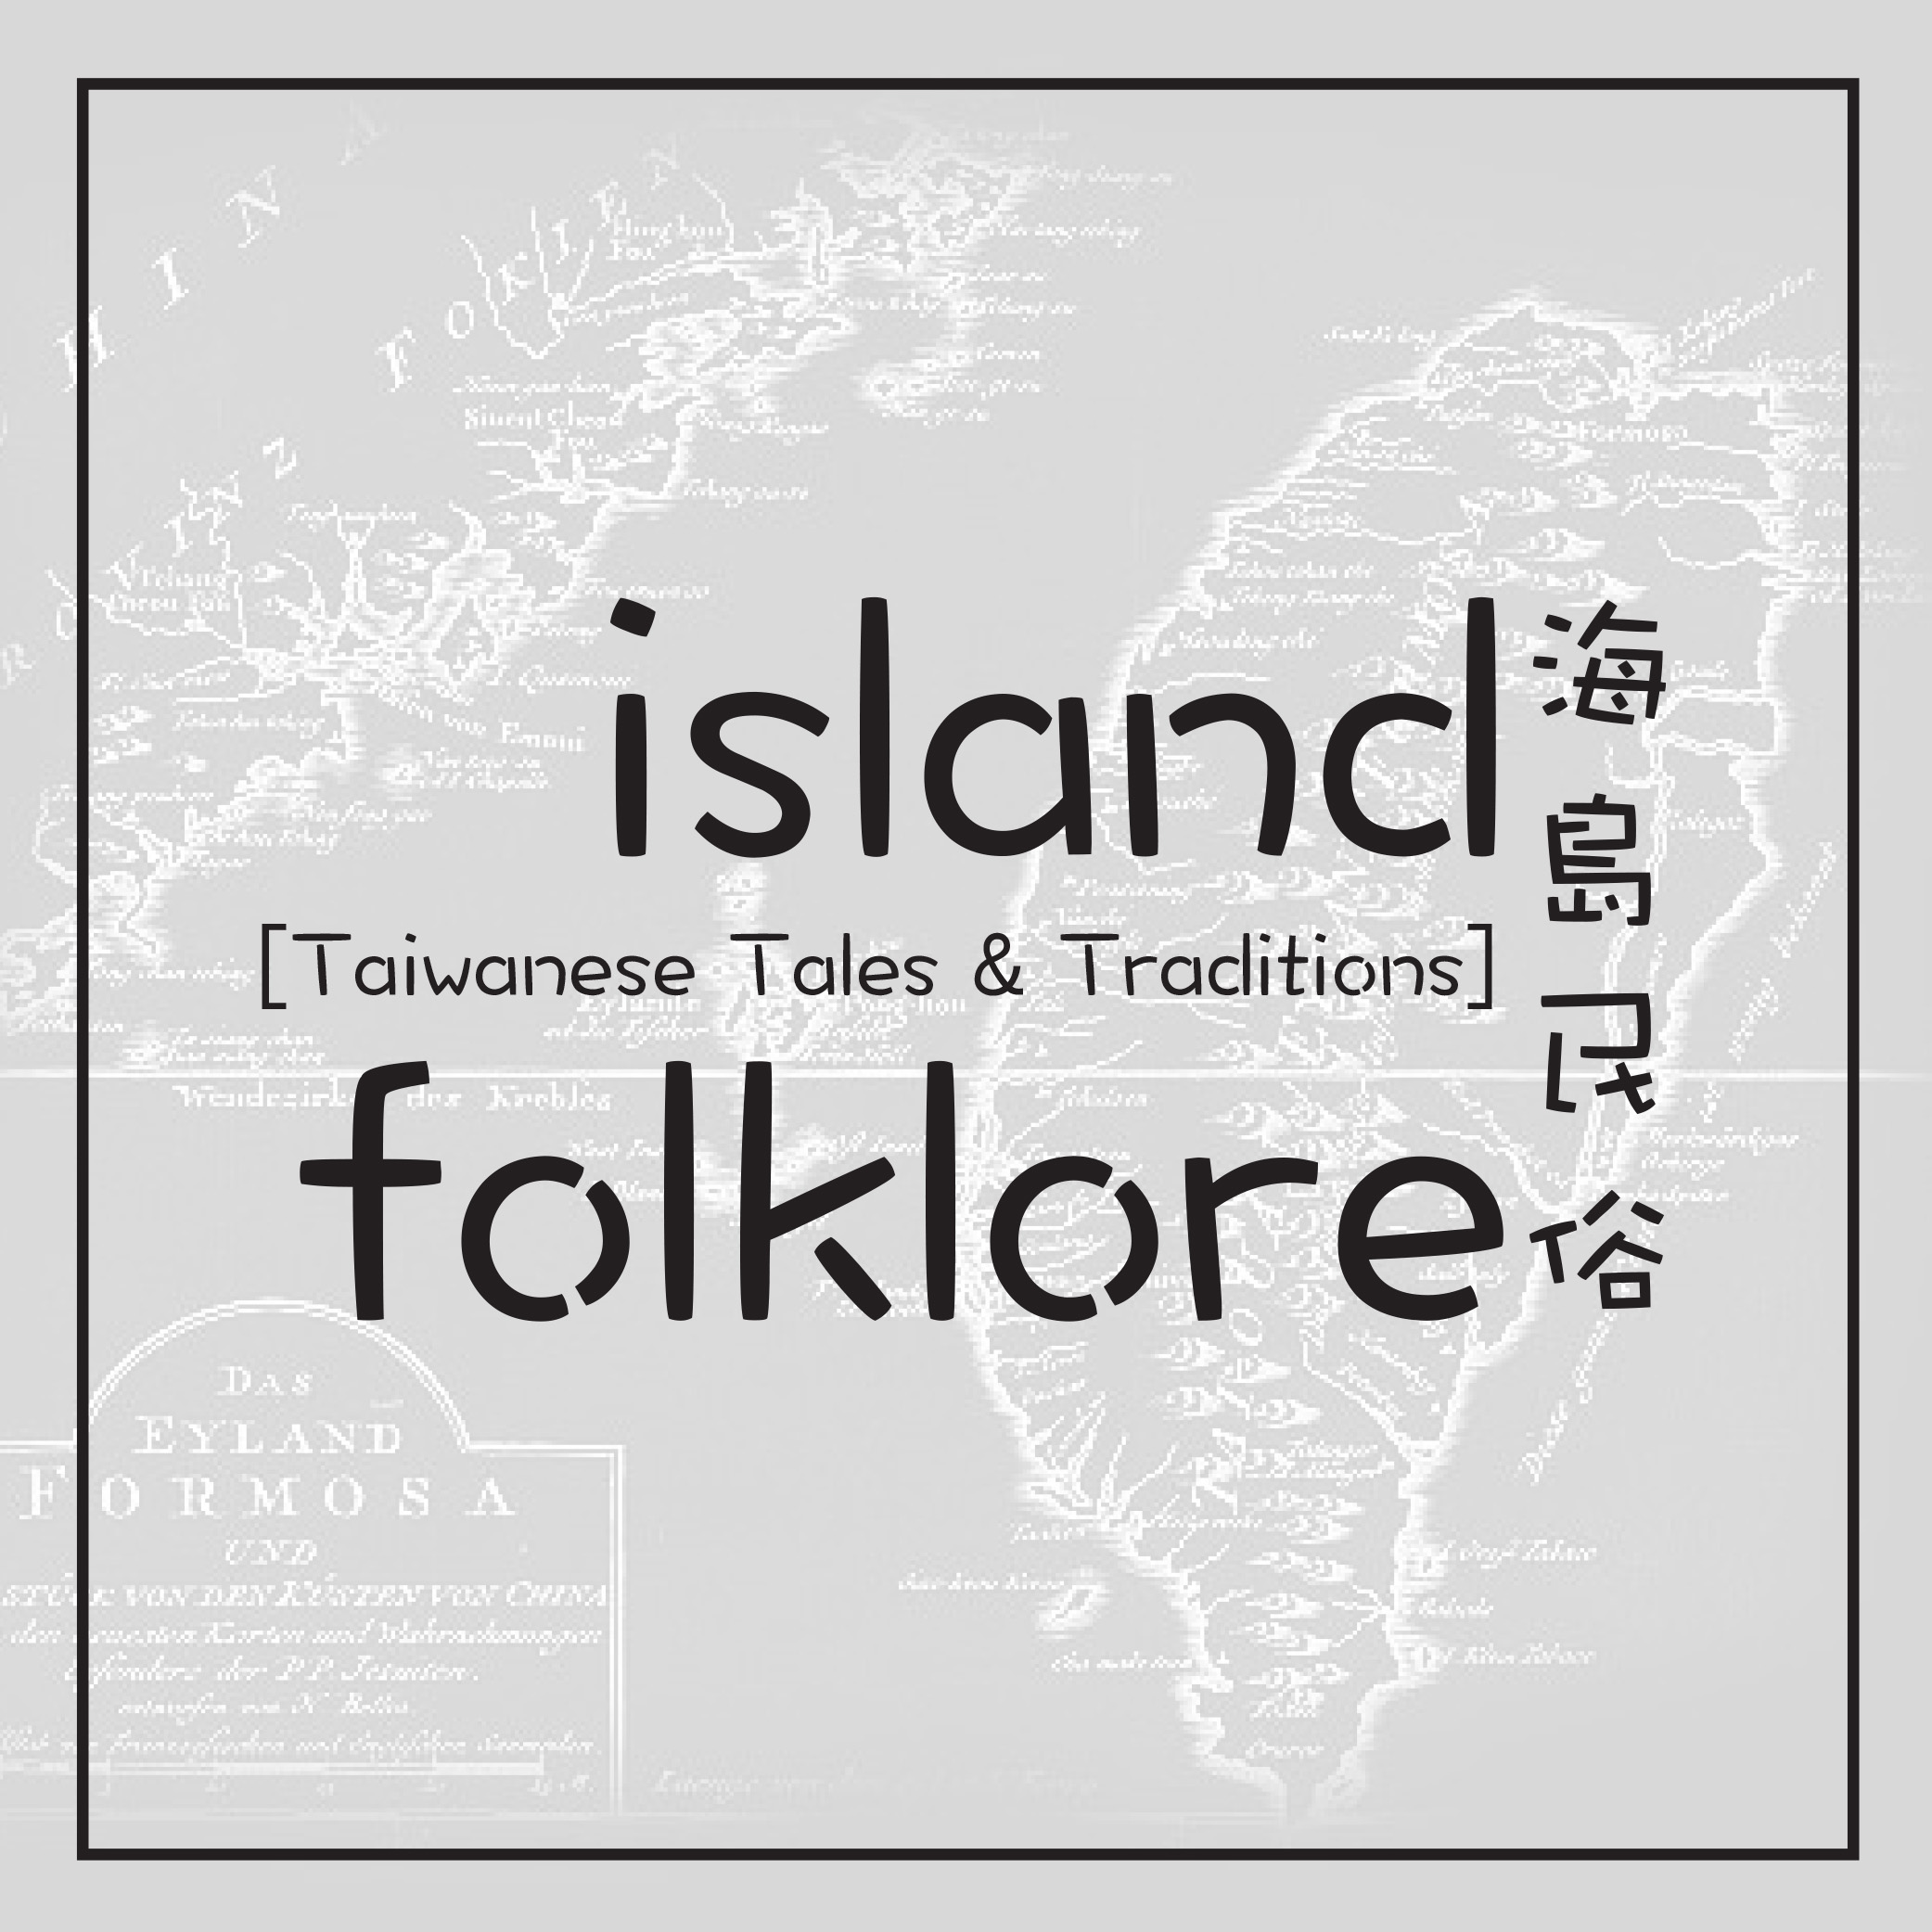 The Island Folklore Society